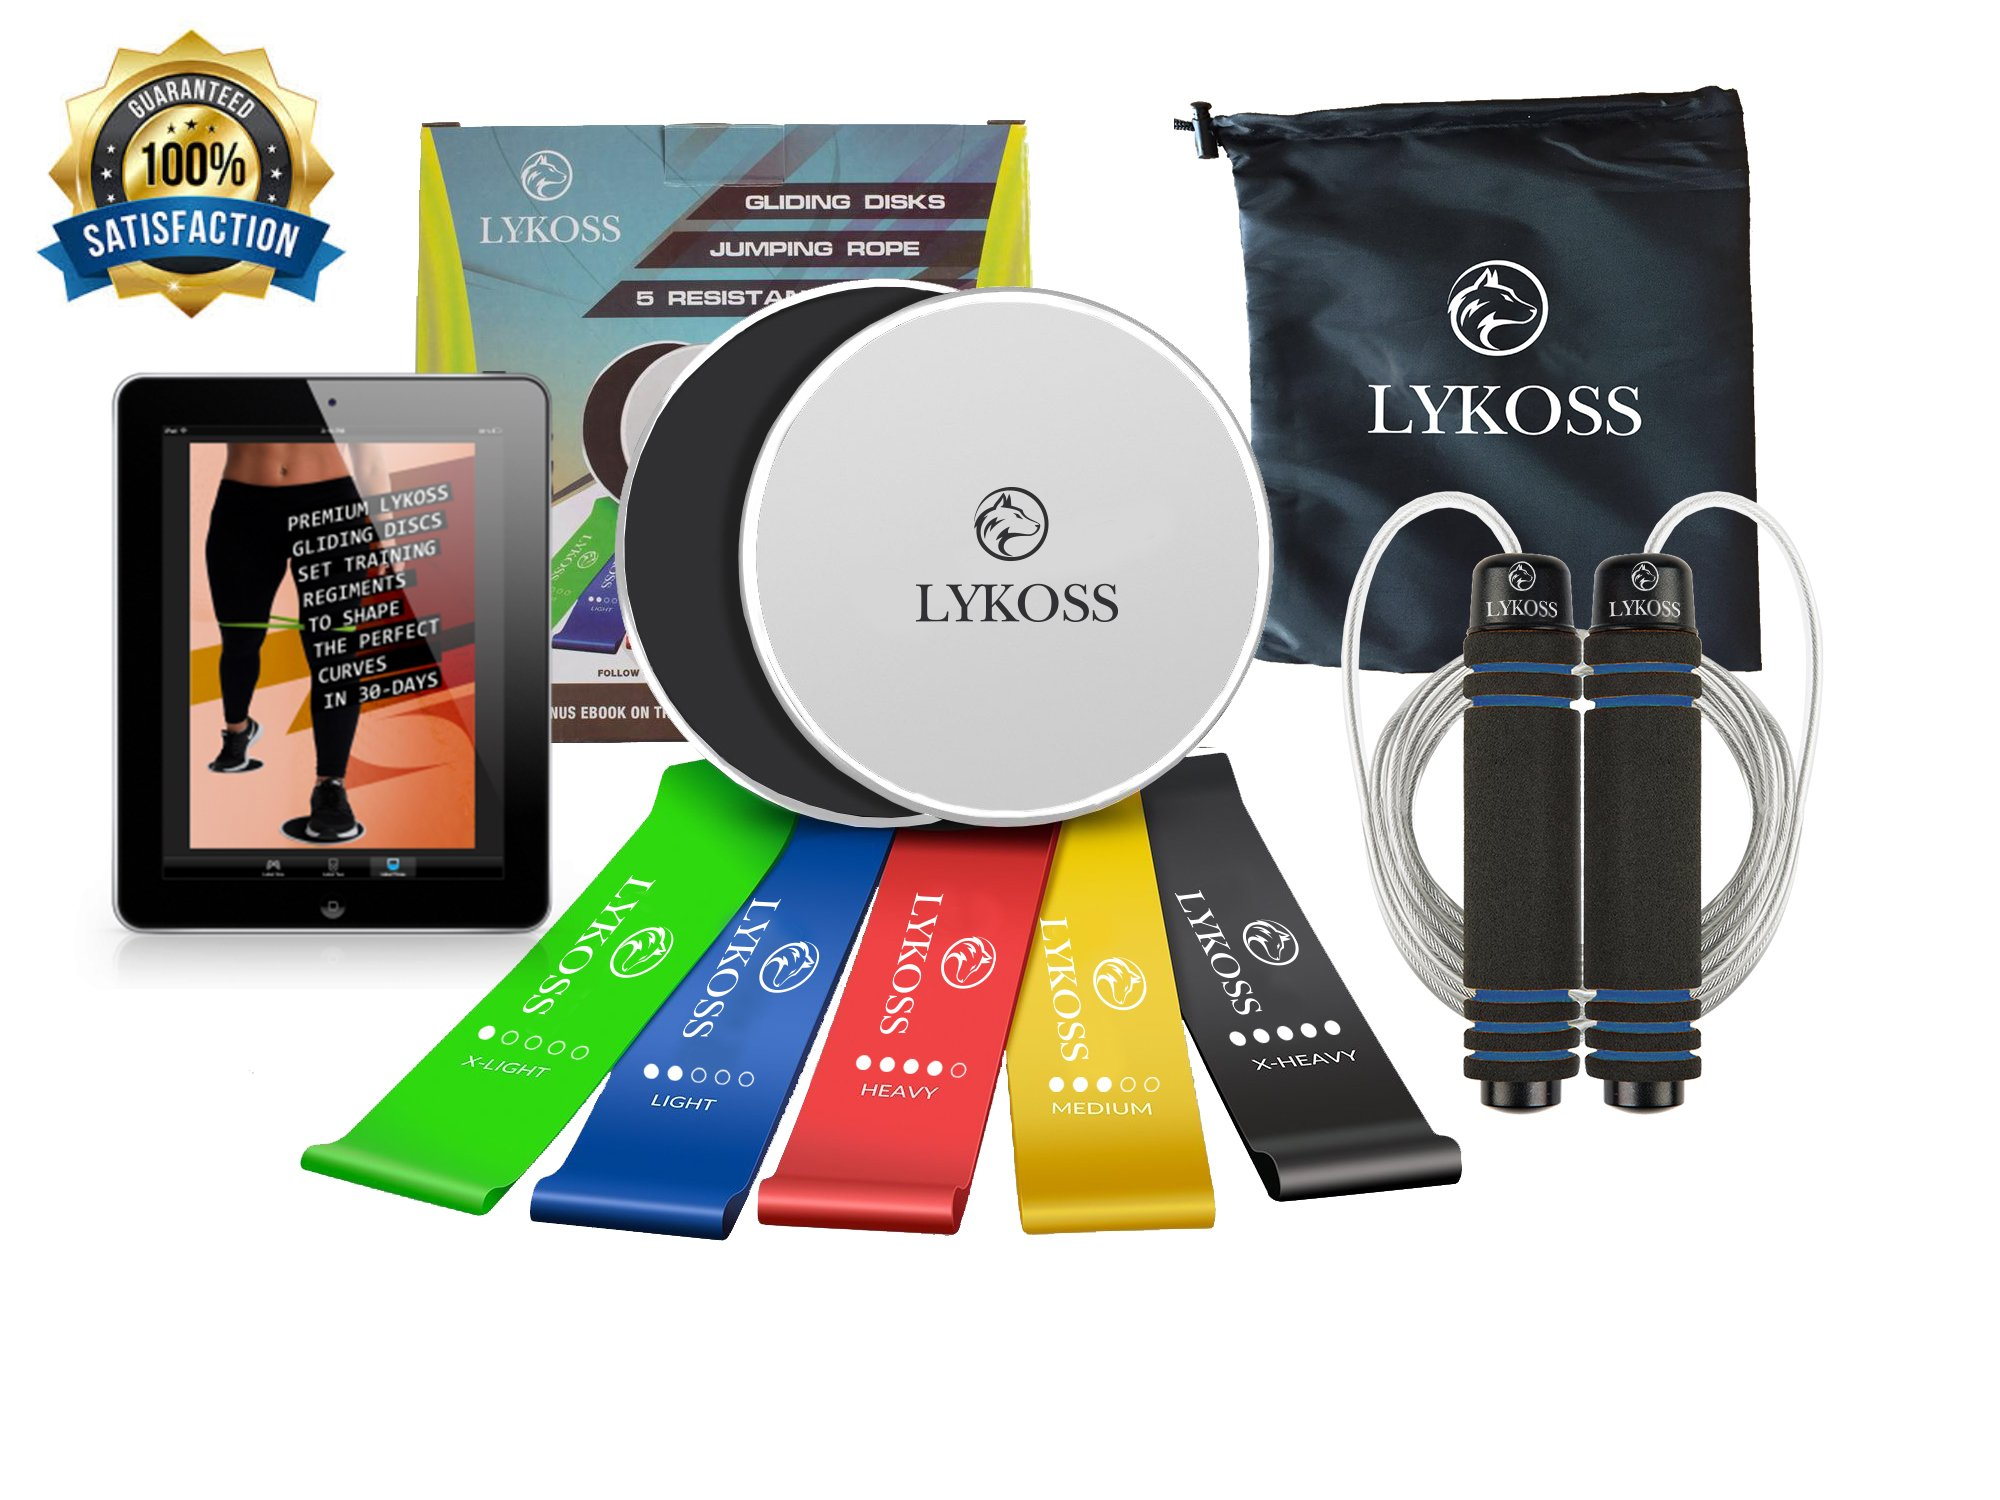 Lykoss 10-IN-ONE 2 Exercise Sliders + 5 Resistance Band Loops + Tangle Free Jump Rope | Gliding Fitness Discs For ANY Surface BONUS eBook System For Building Core Muscles And Dieting To Lose Fat!